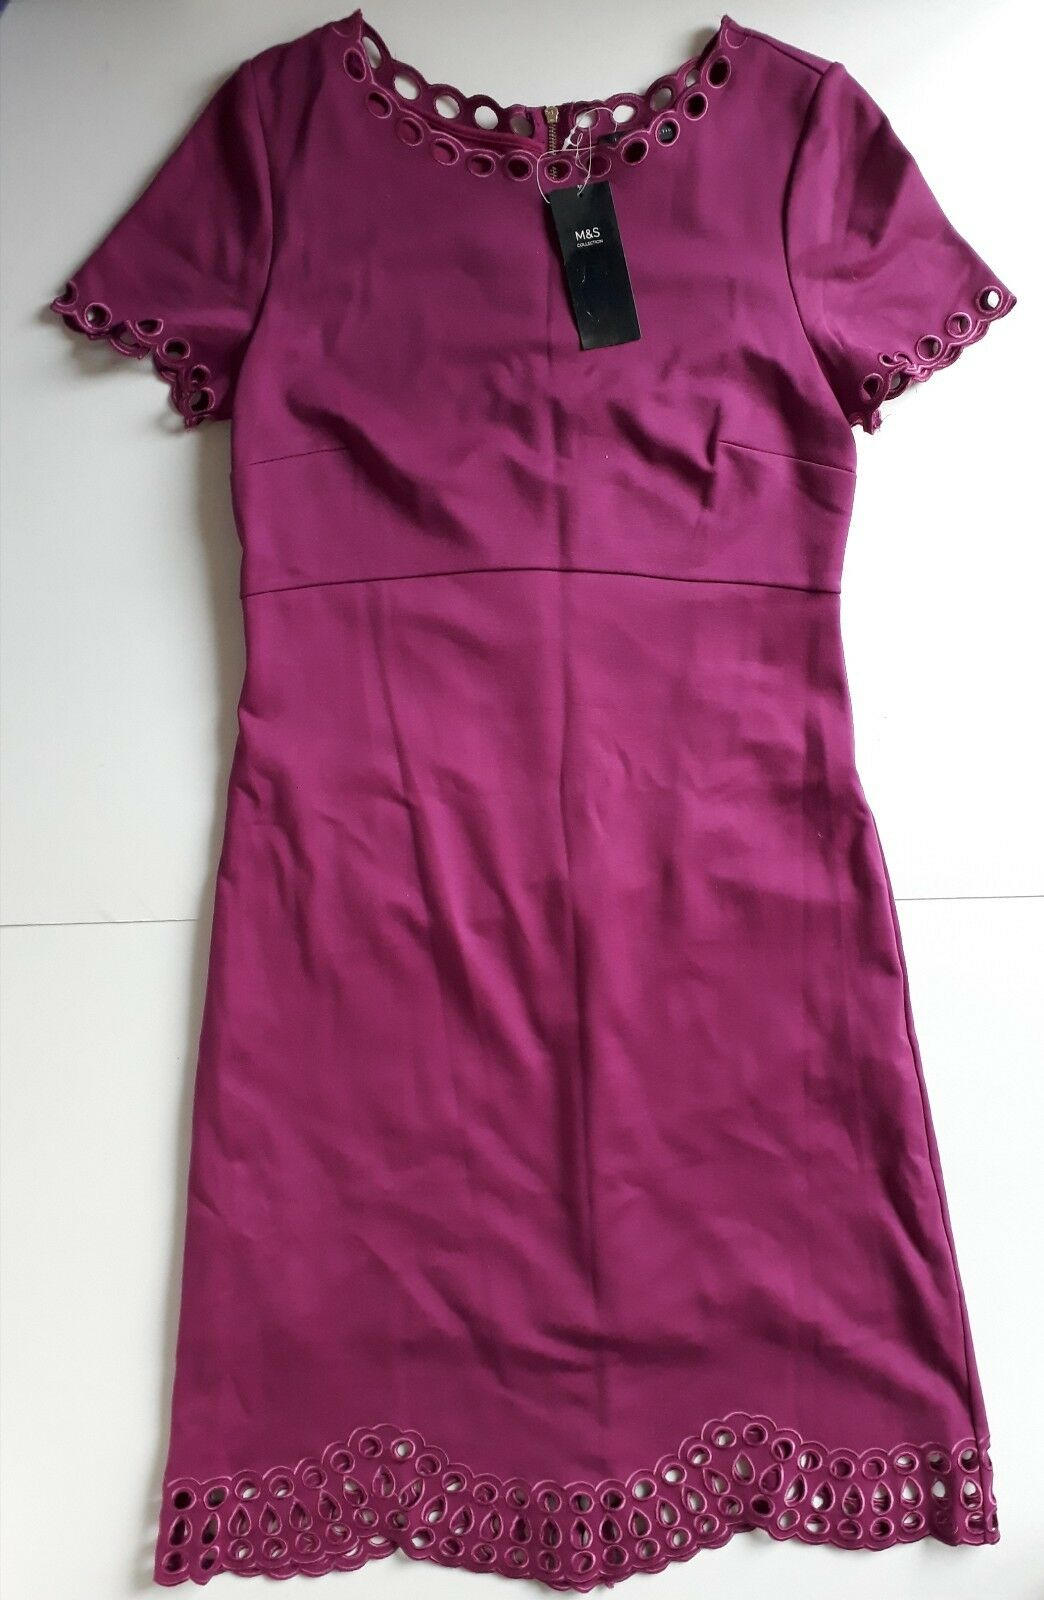 Marks and Spencer's dark pink dress size 10 regular new with tags